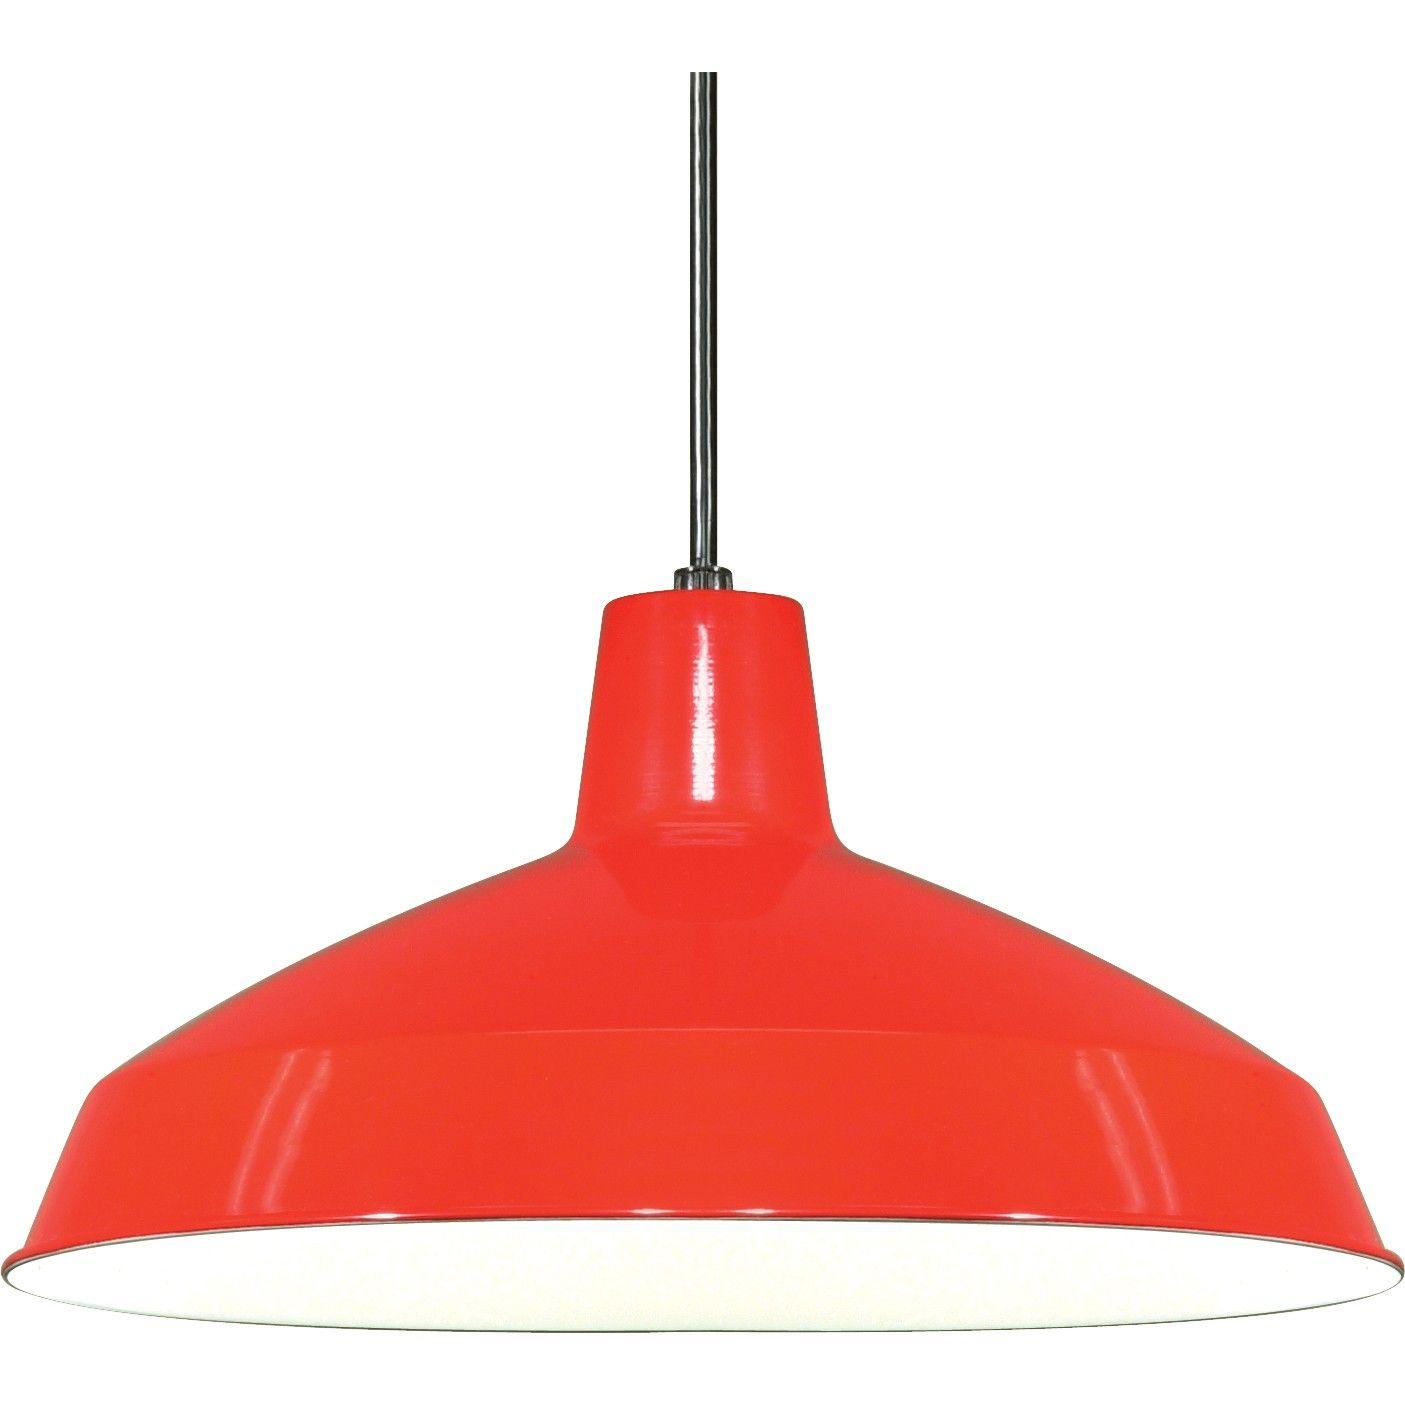 dp pendant lighting com nuvo shade amazon white warehouse